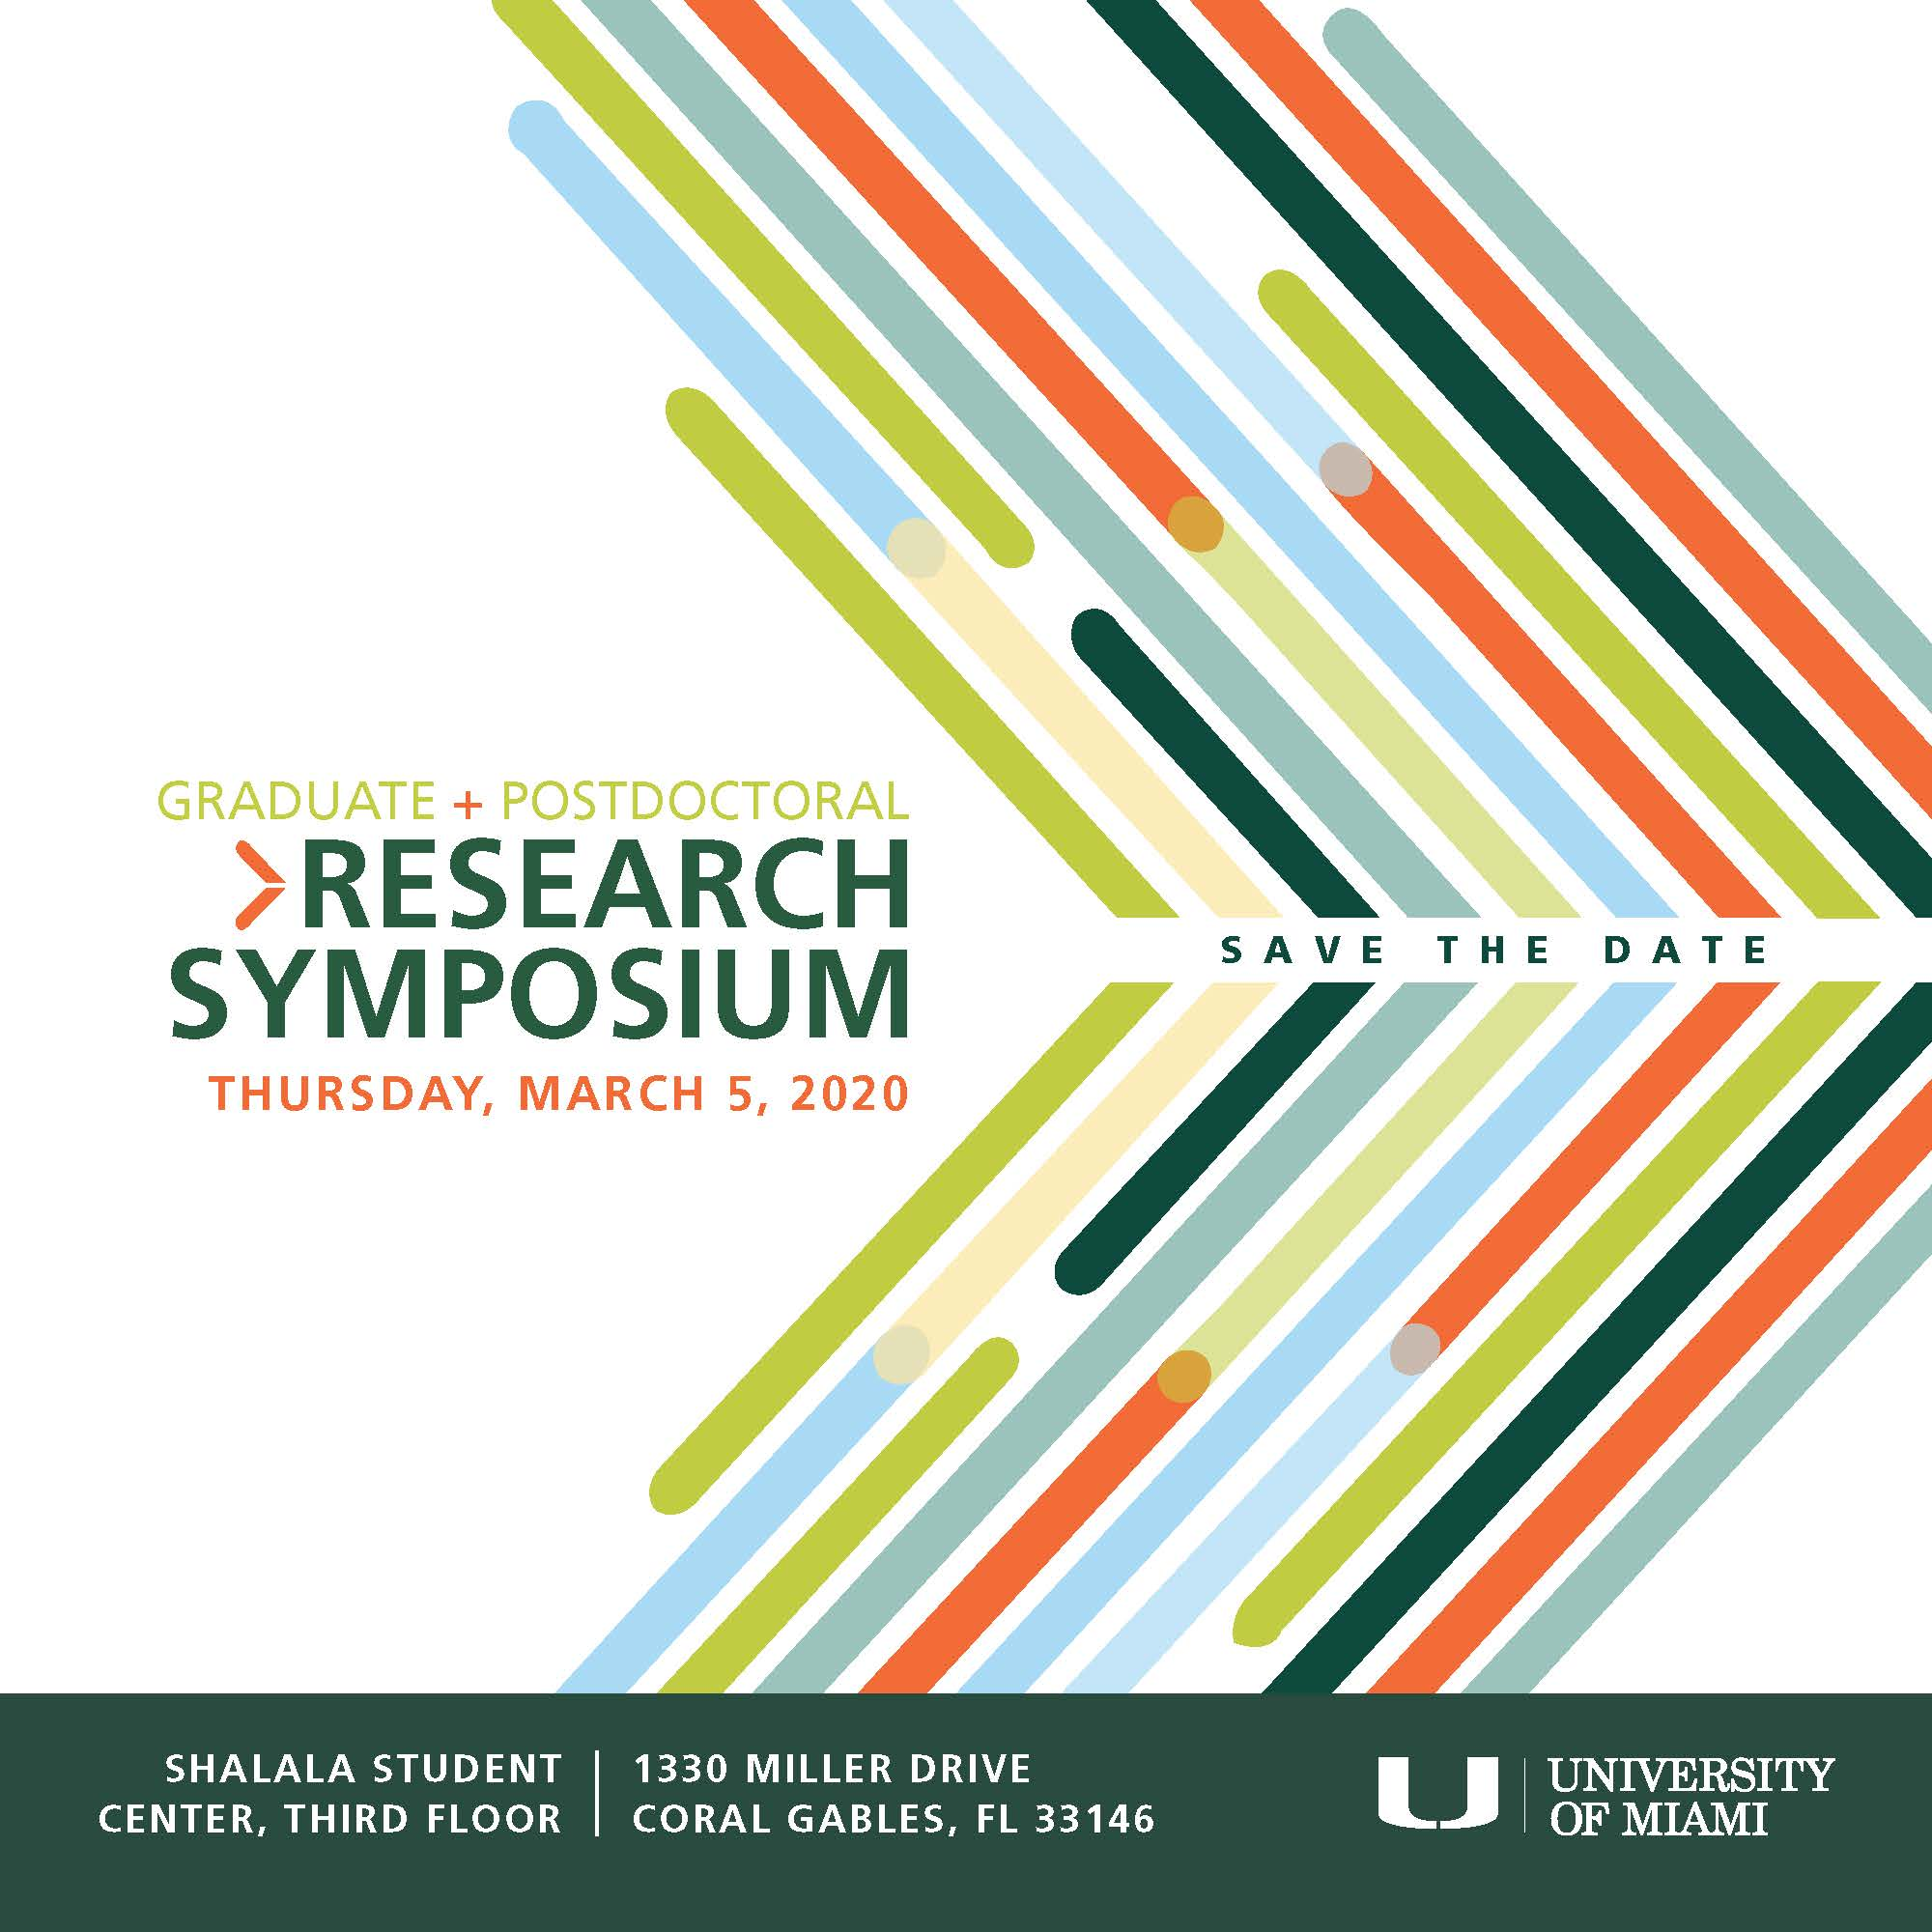 2020 Graduate and Postdoctoral Research Symposium applications now open!